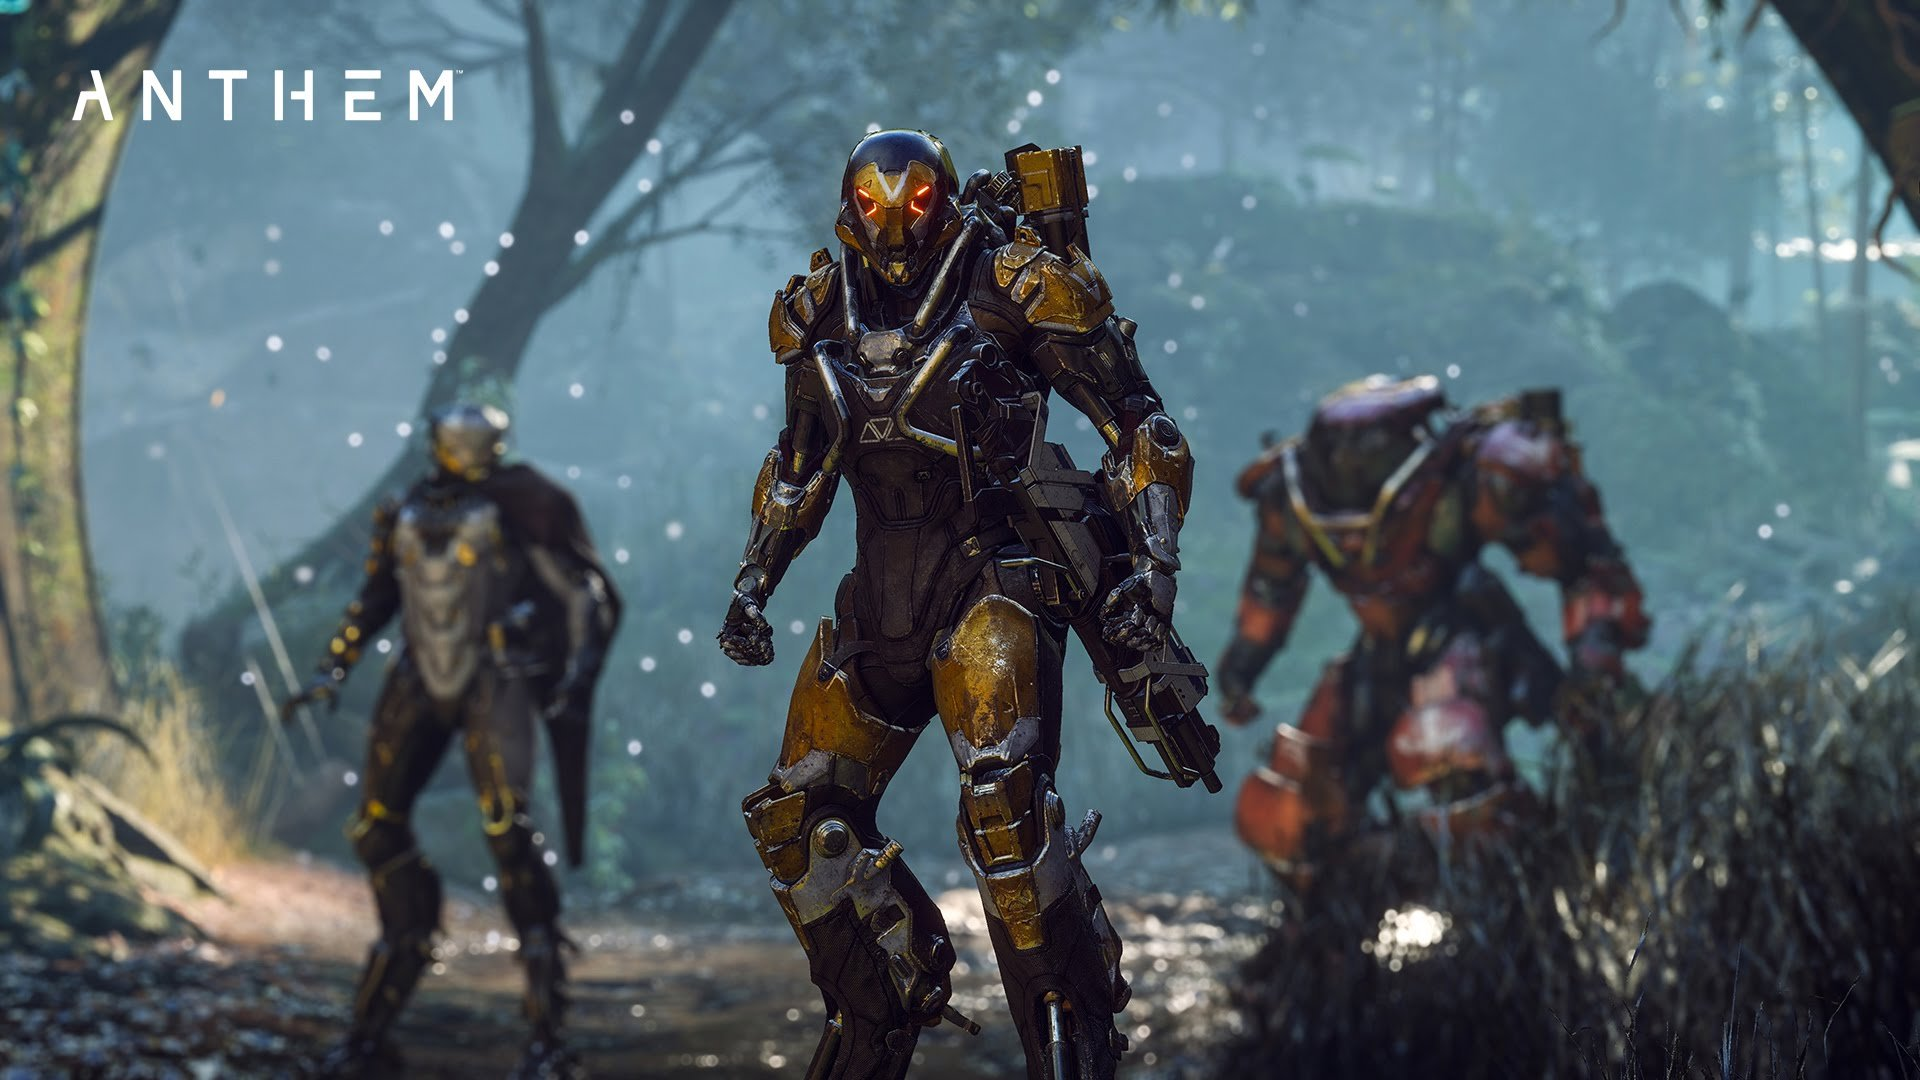 The Anthem demo will let you preview the game before it's released on February 22.